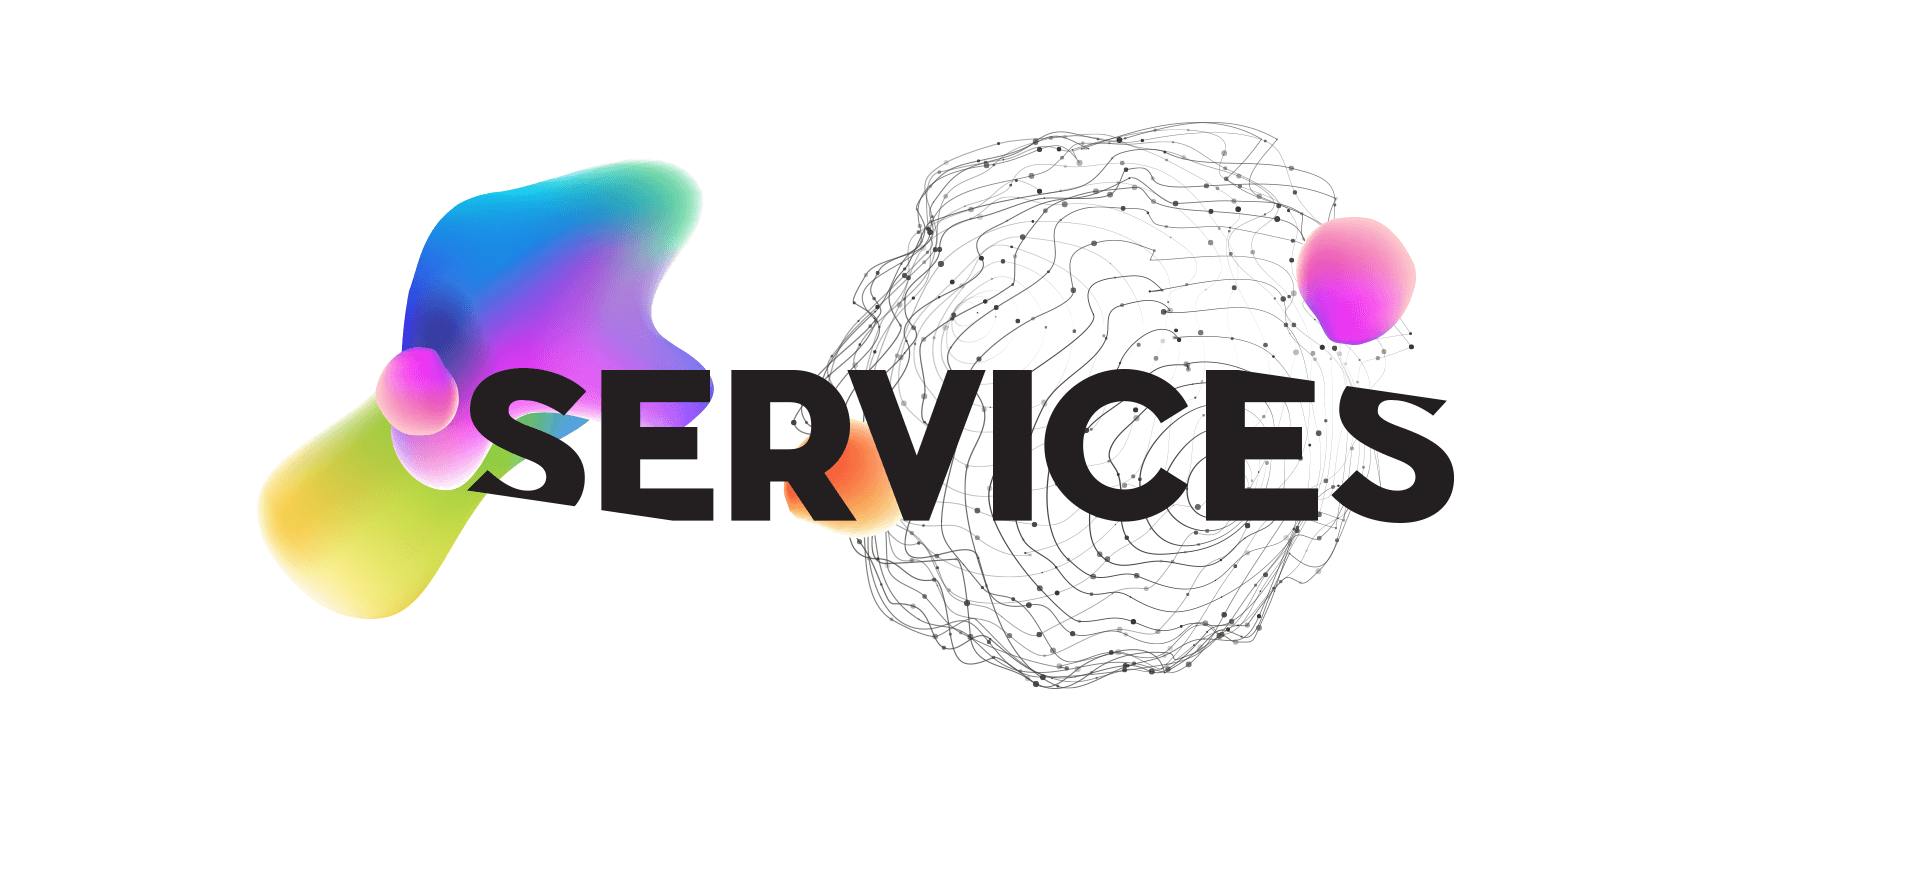 Pattern Services